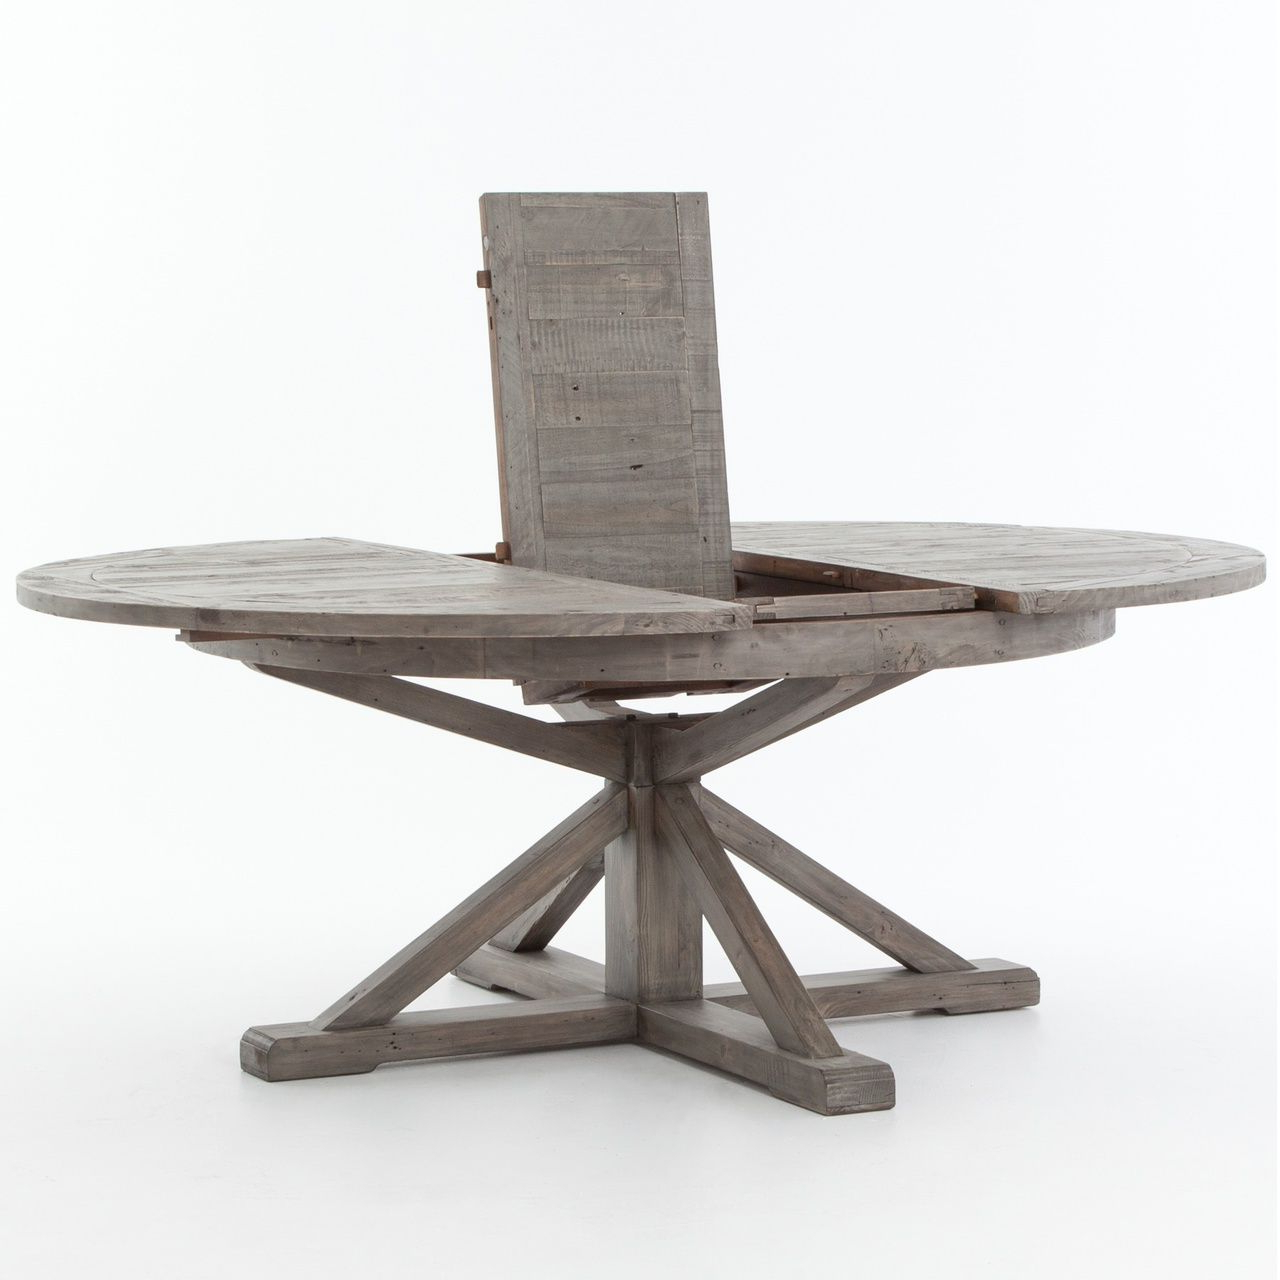 2020 8 Seater Wood Contemporary Dining Tables With Extension Leaf Inside Cintra Reclaimed Wood Extending Round Dining Table  (View 1 of 25)